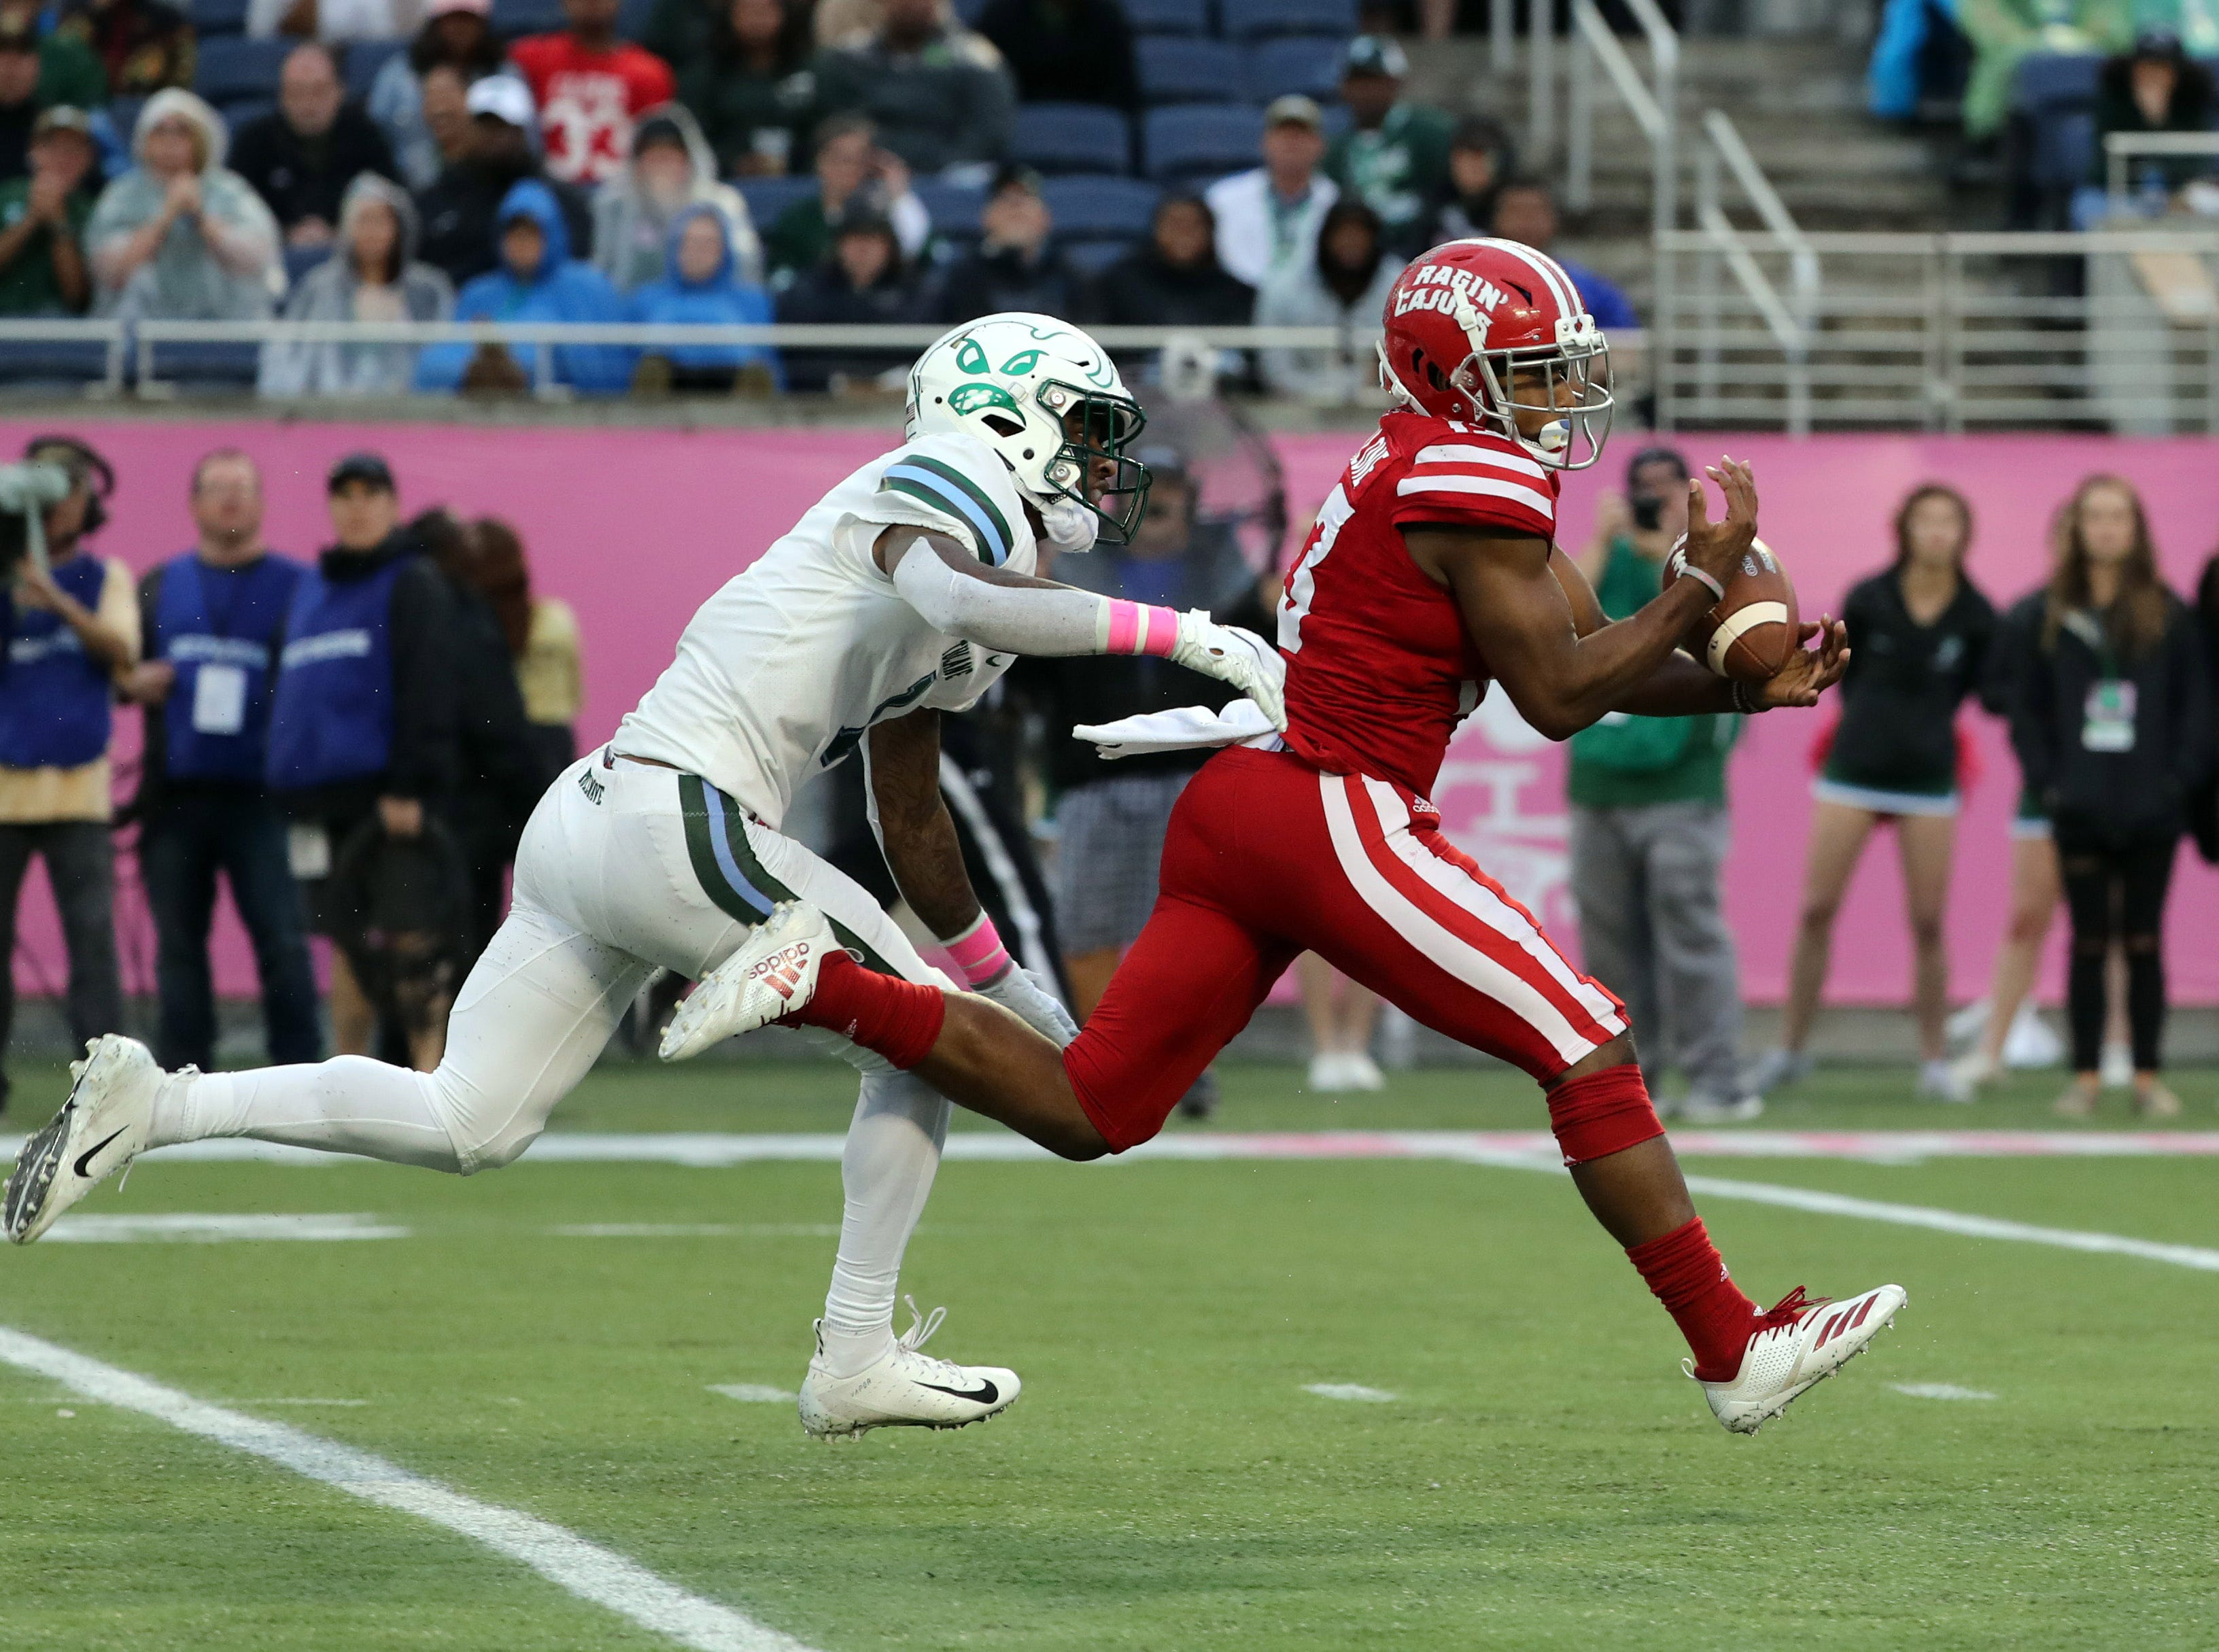 Dec 15, 2018; Orlando, FL, USA; Louisiana-Lafayette Ragin Cajuns wide receiver Ryheem Malone (13) catches the ball over Tulane Green Wave cornerback Donnie Lewis Jr. (1) during the second half at Camping World Stadium. Mandatory Credit: Kim Klement-USA TODAY Sports